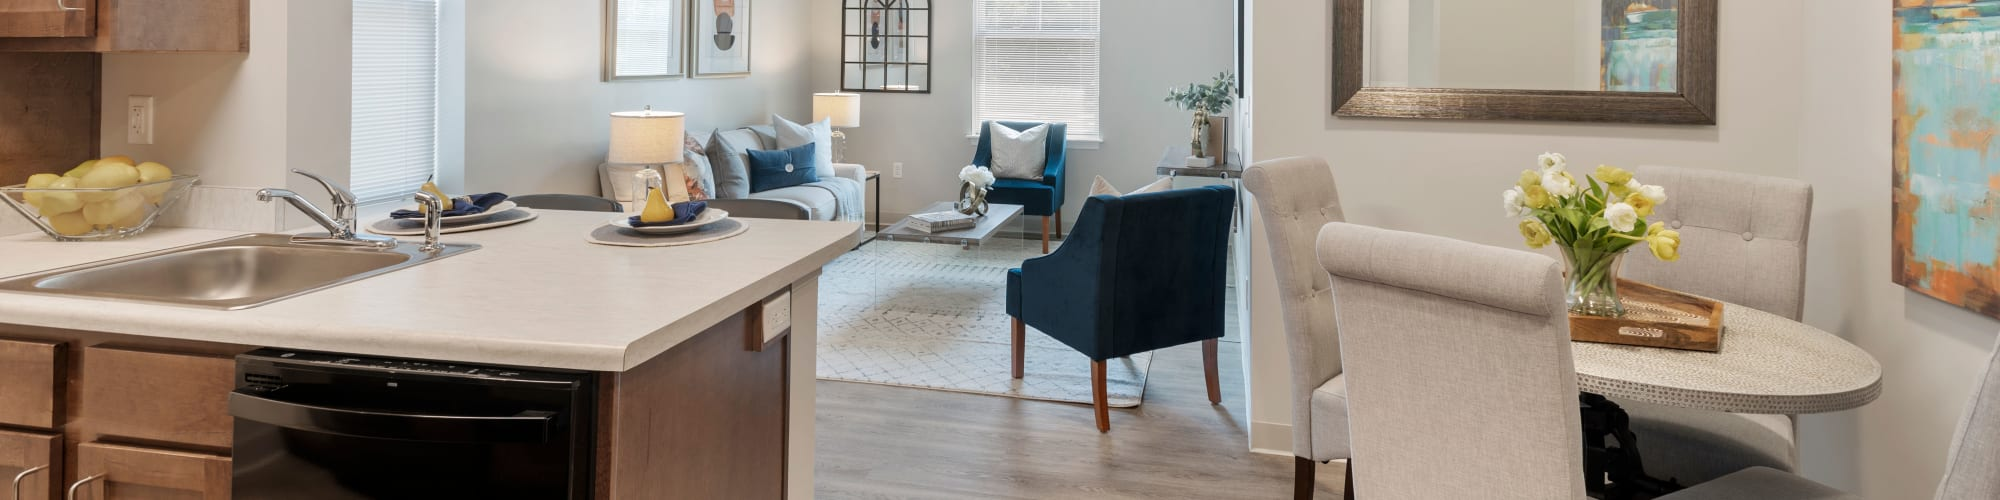 Virtual tour of The Apartments at Sharpe Square in Frederick, Maryland